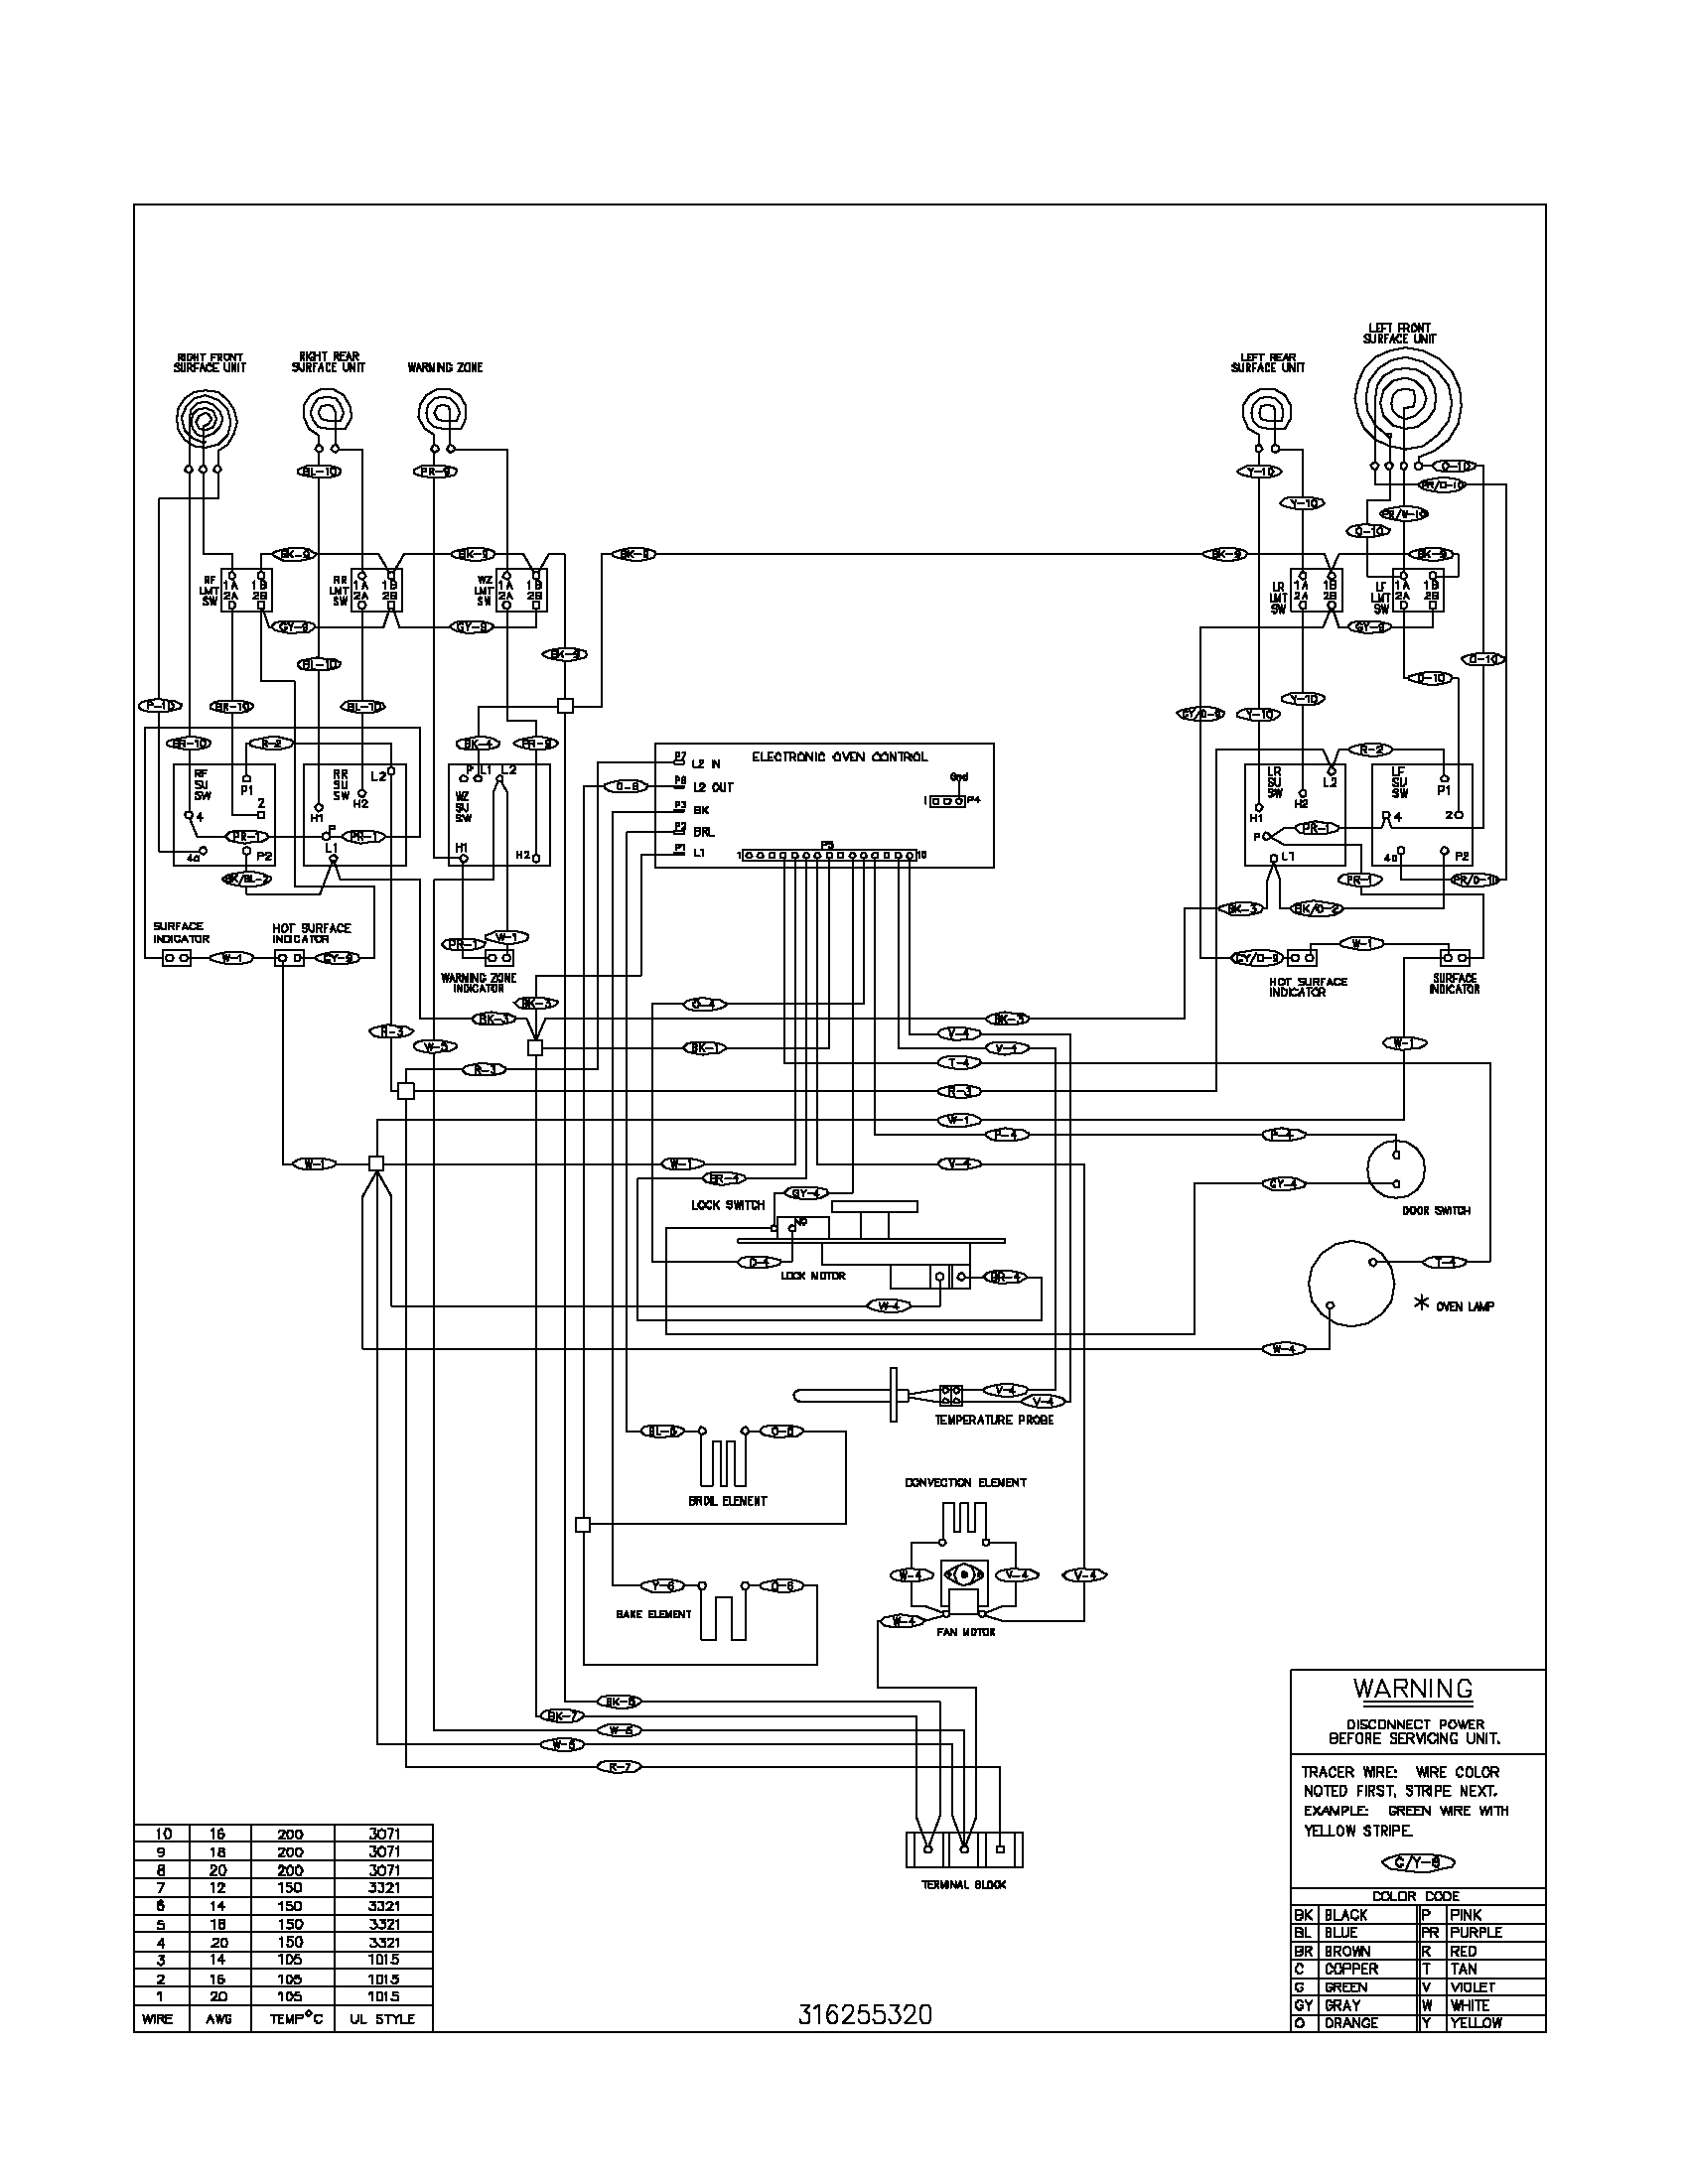 whirlpool electric range wiring schematic